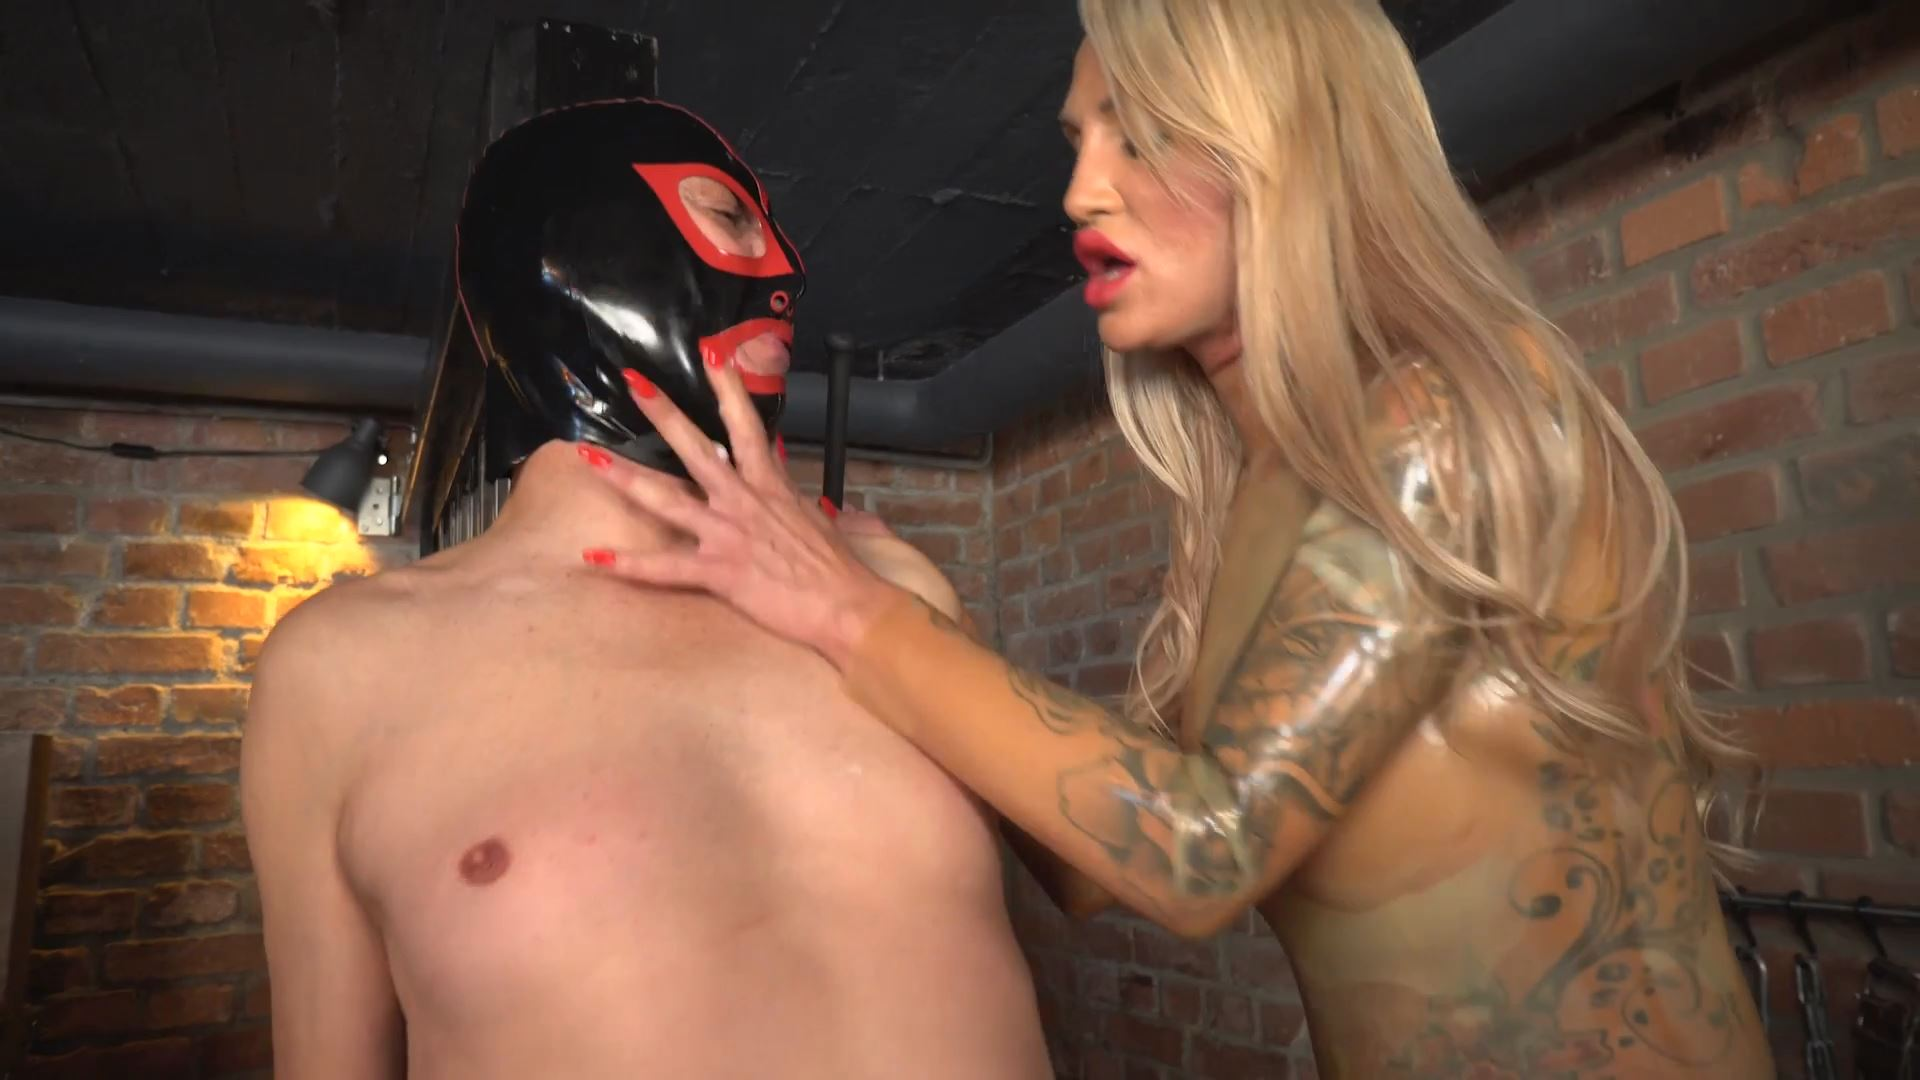 Sex Tourist caught and punished in my dungeon - CALEA TOXIC - FULL HD/1080p/MP4